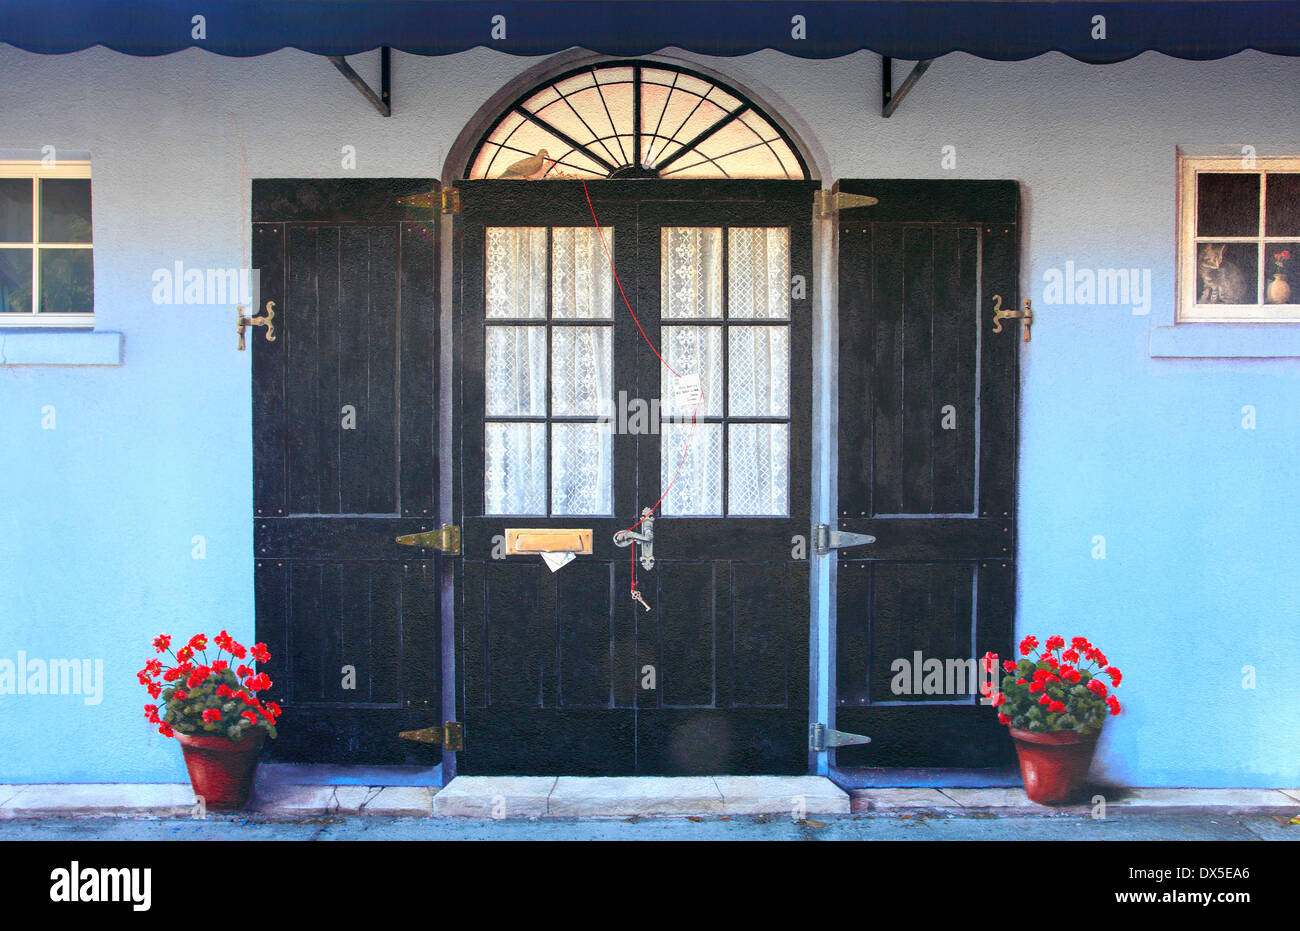 Realistic Wall Mural of a wooden door and windows with flower pots in the town of Sarasota Florida, USA - Stock Image